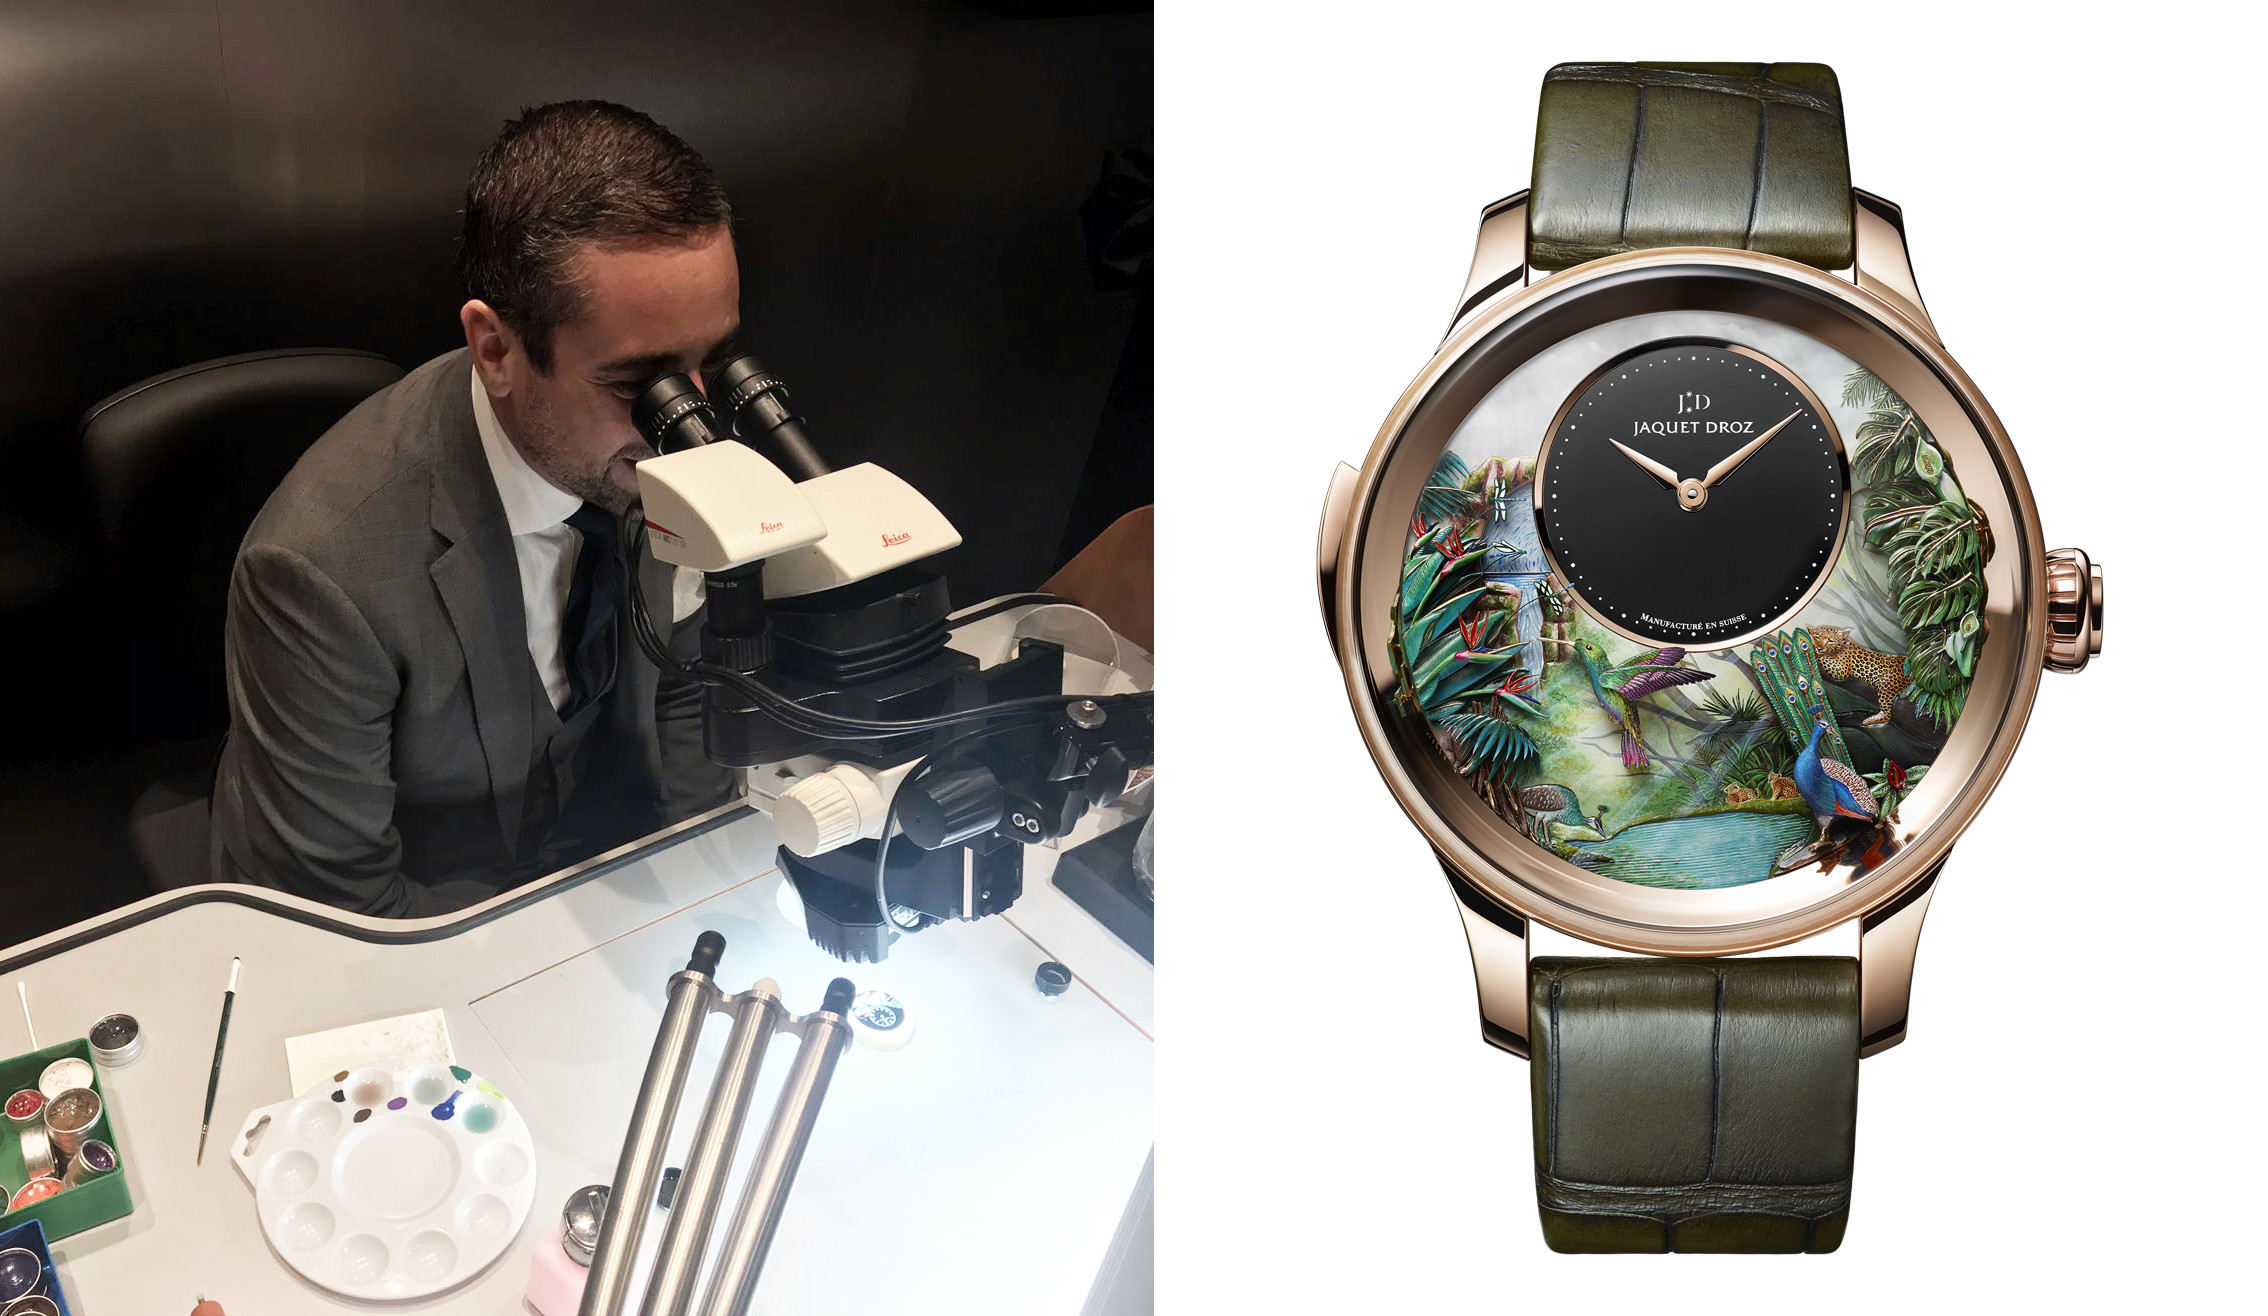 Antonio Cecere at Jaquet Droz. Tropical Bird Repeater